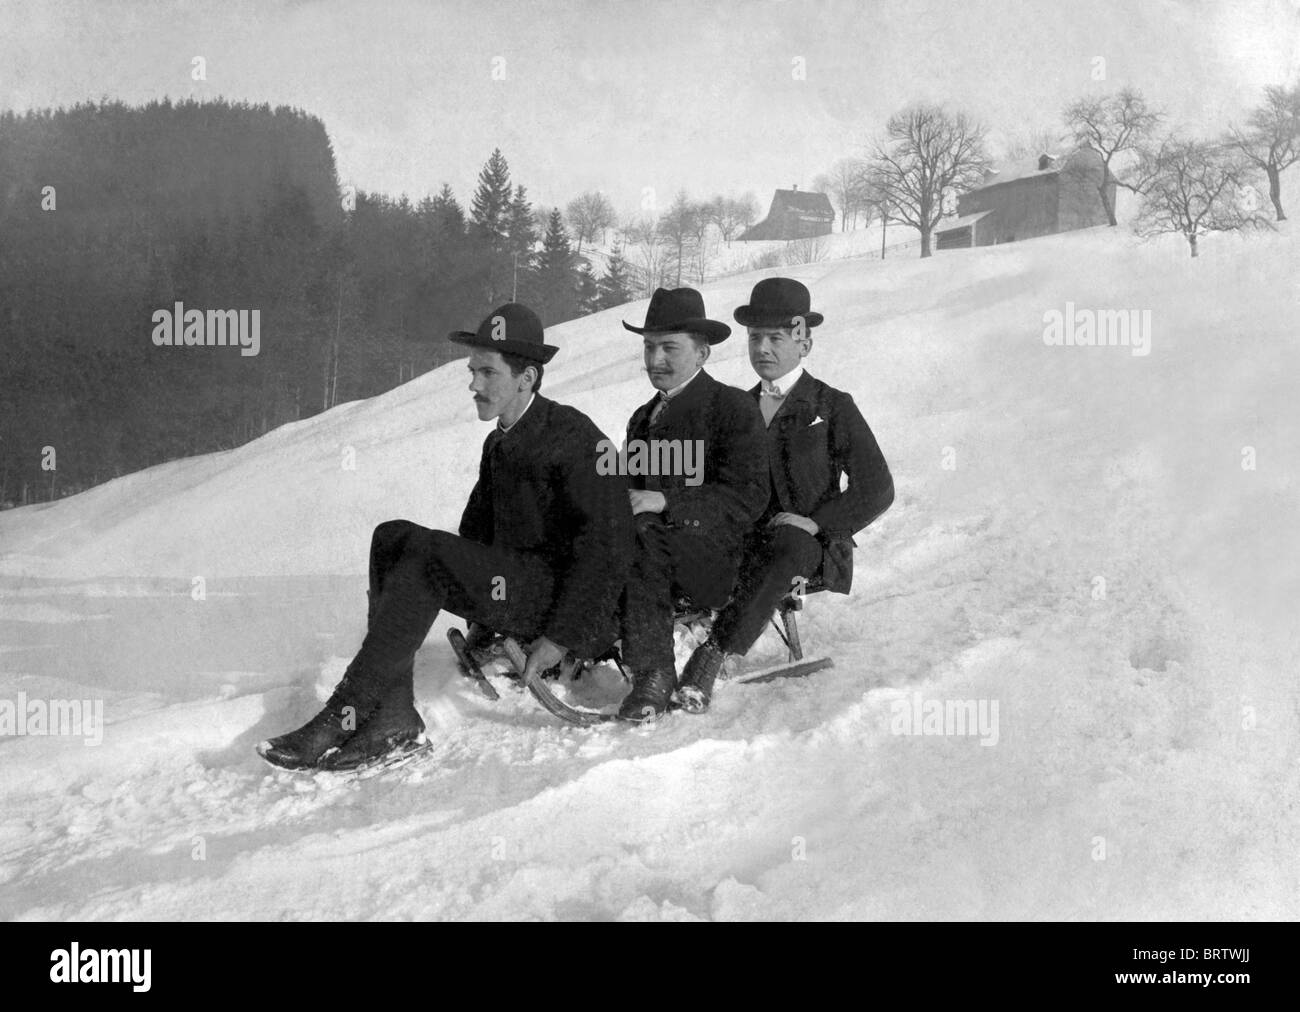 Three gentlemen riding a sled, historical image, ca. 1912 - Stock Image